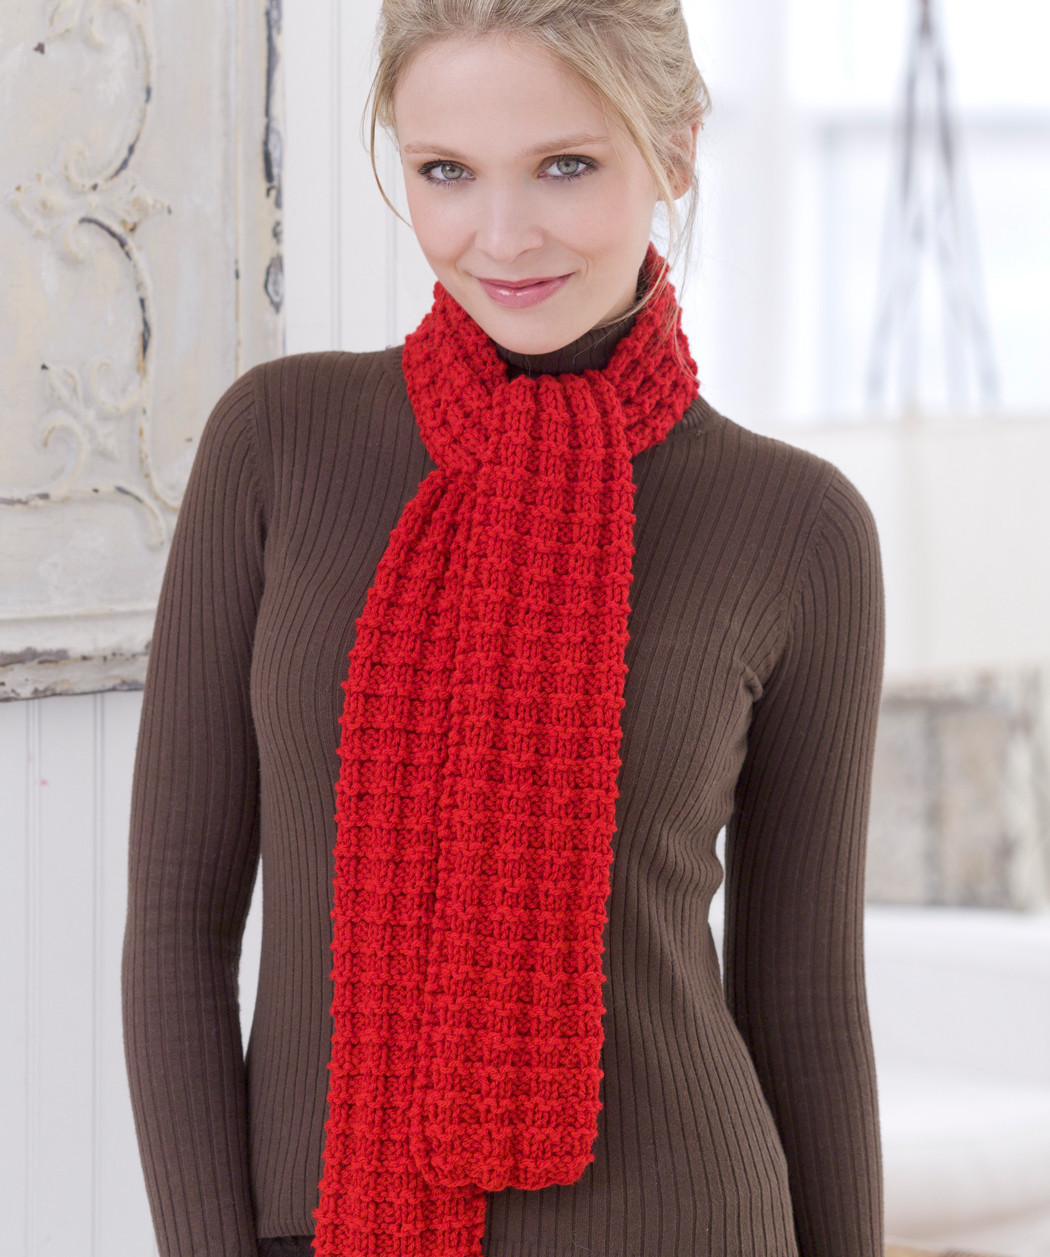 Crochet Knitting Patterns Unique We Love Free Valentine's Day Heart Inspired Patterns to Of Delightful 47 Ideas Crochet Knitting Patterns